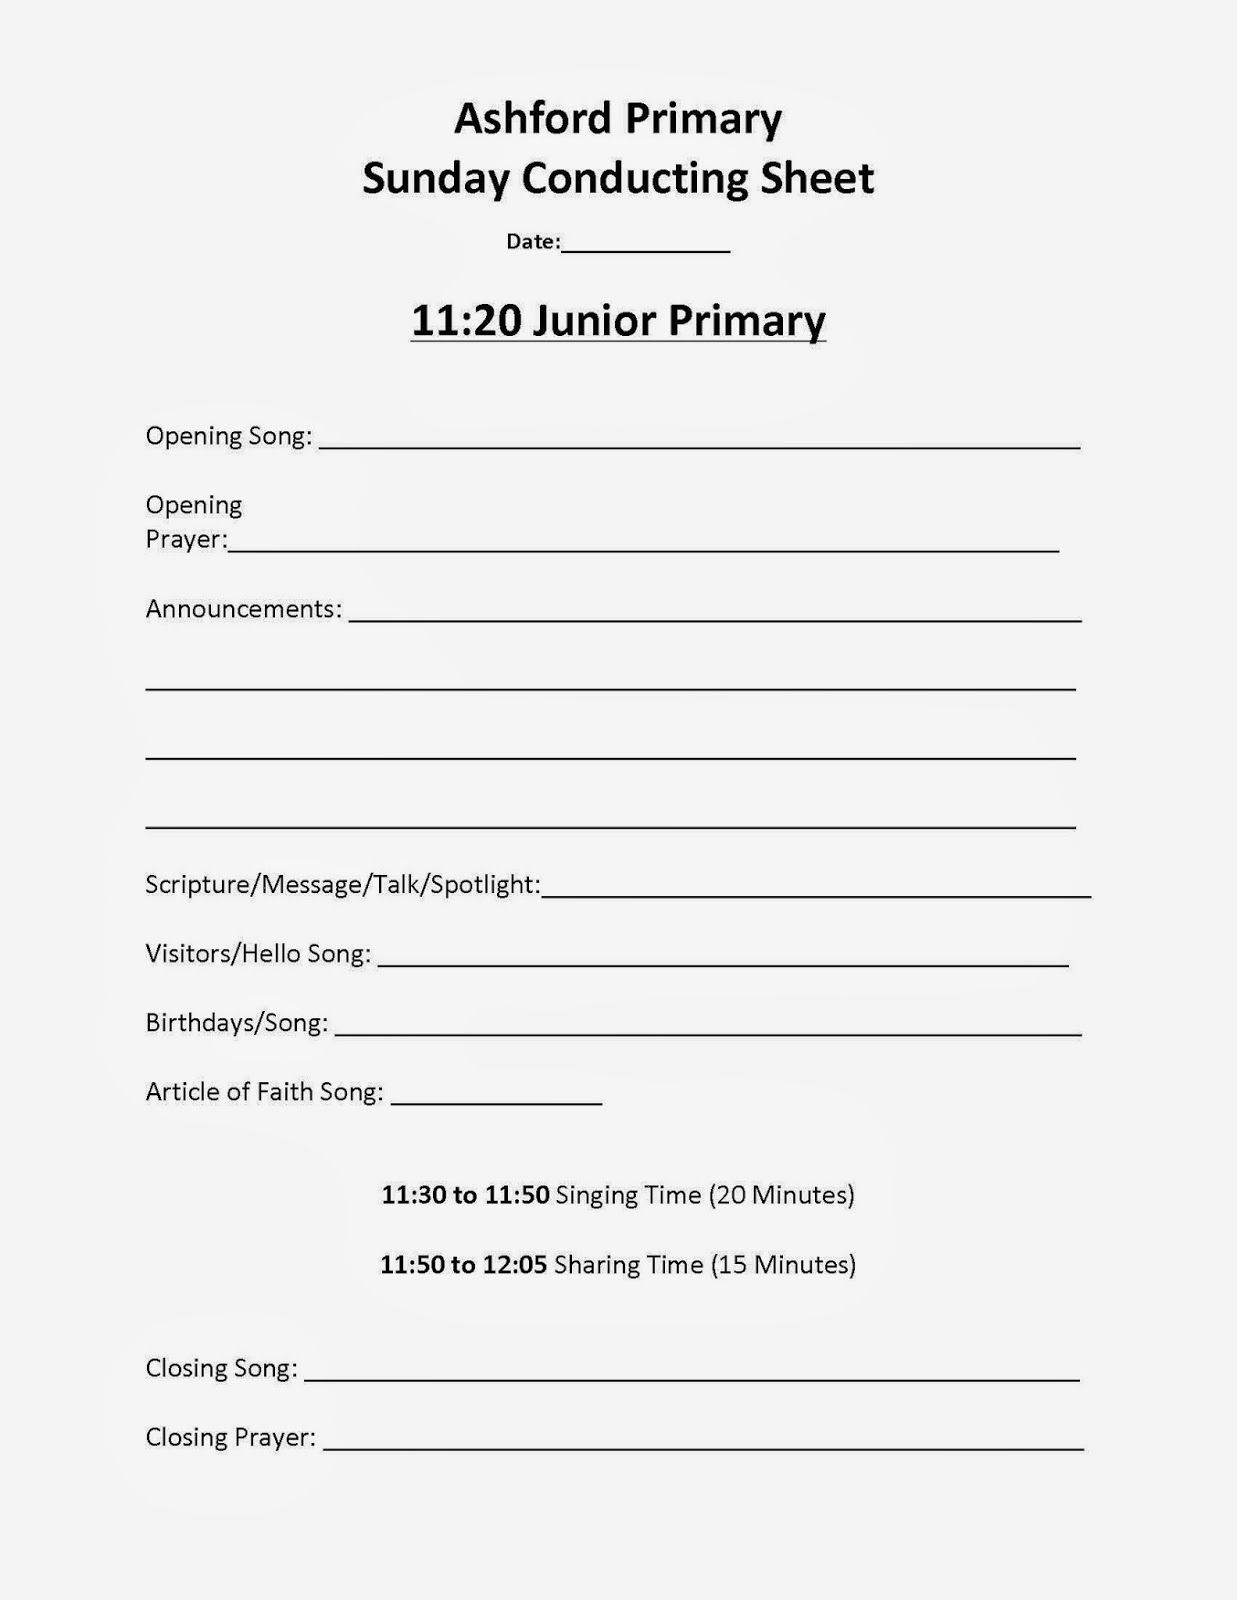 Lds Primary Sharing Time Agenda Conducting Sheet Lds